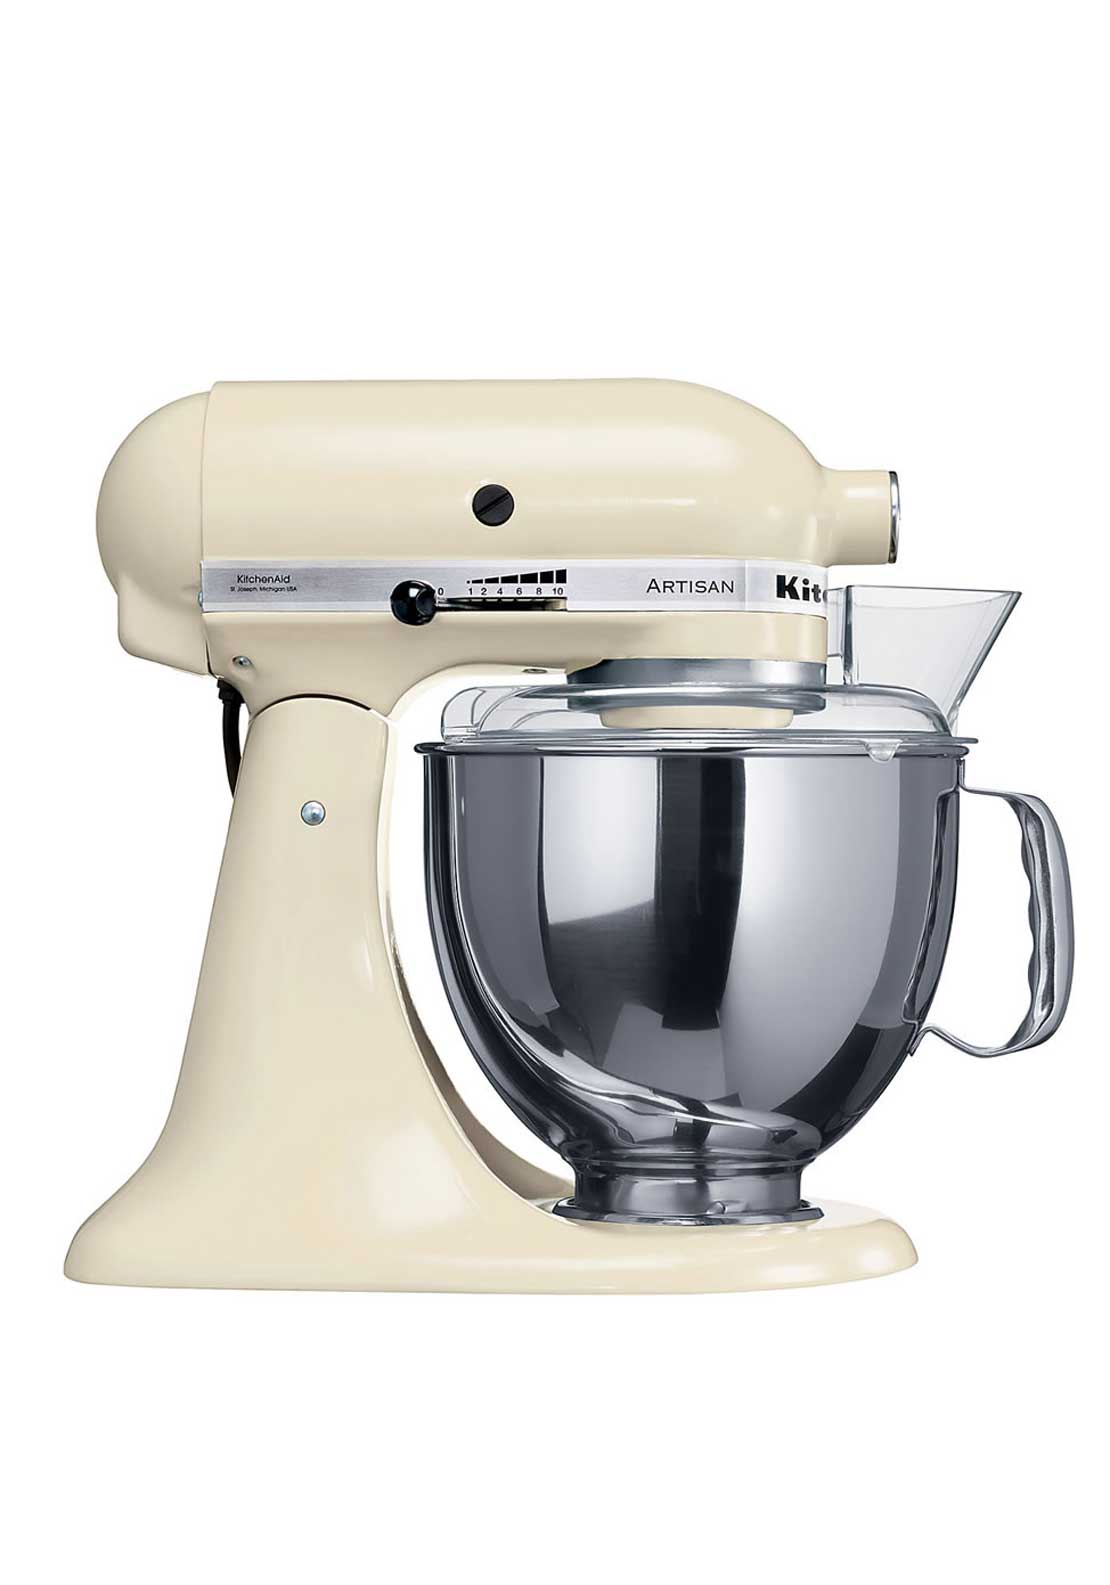 KitchenAid Artisan Stand Kitchen Mixer 4.8L, Almond Cream